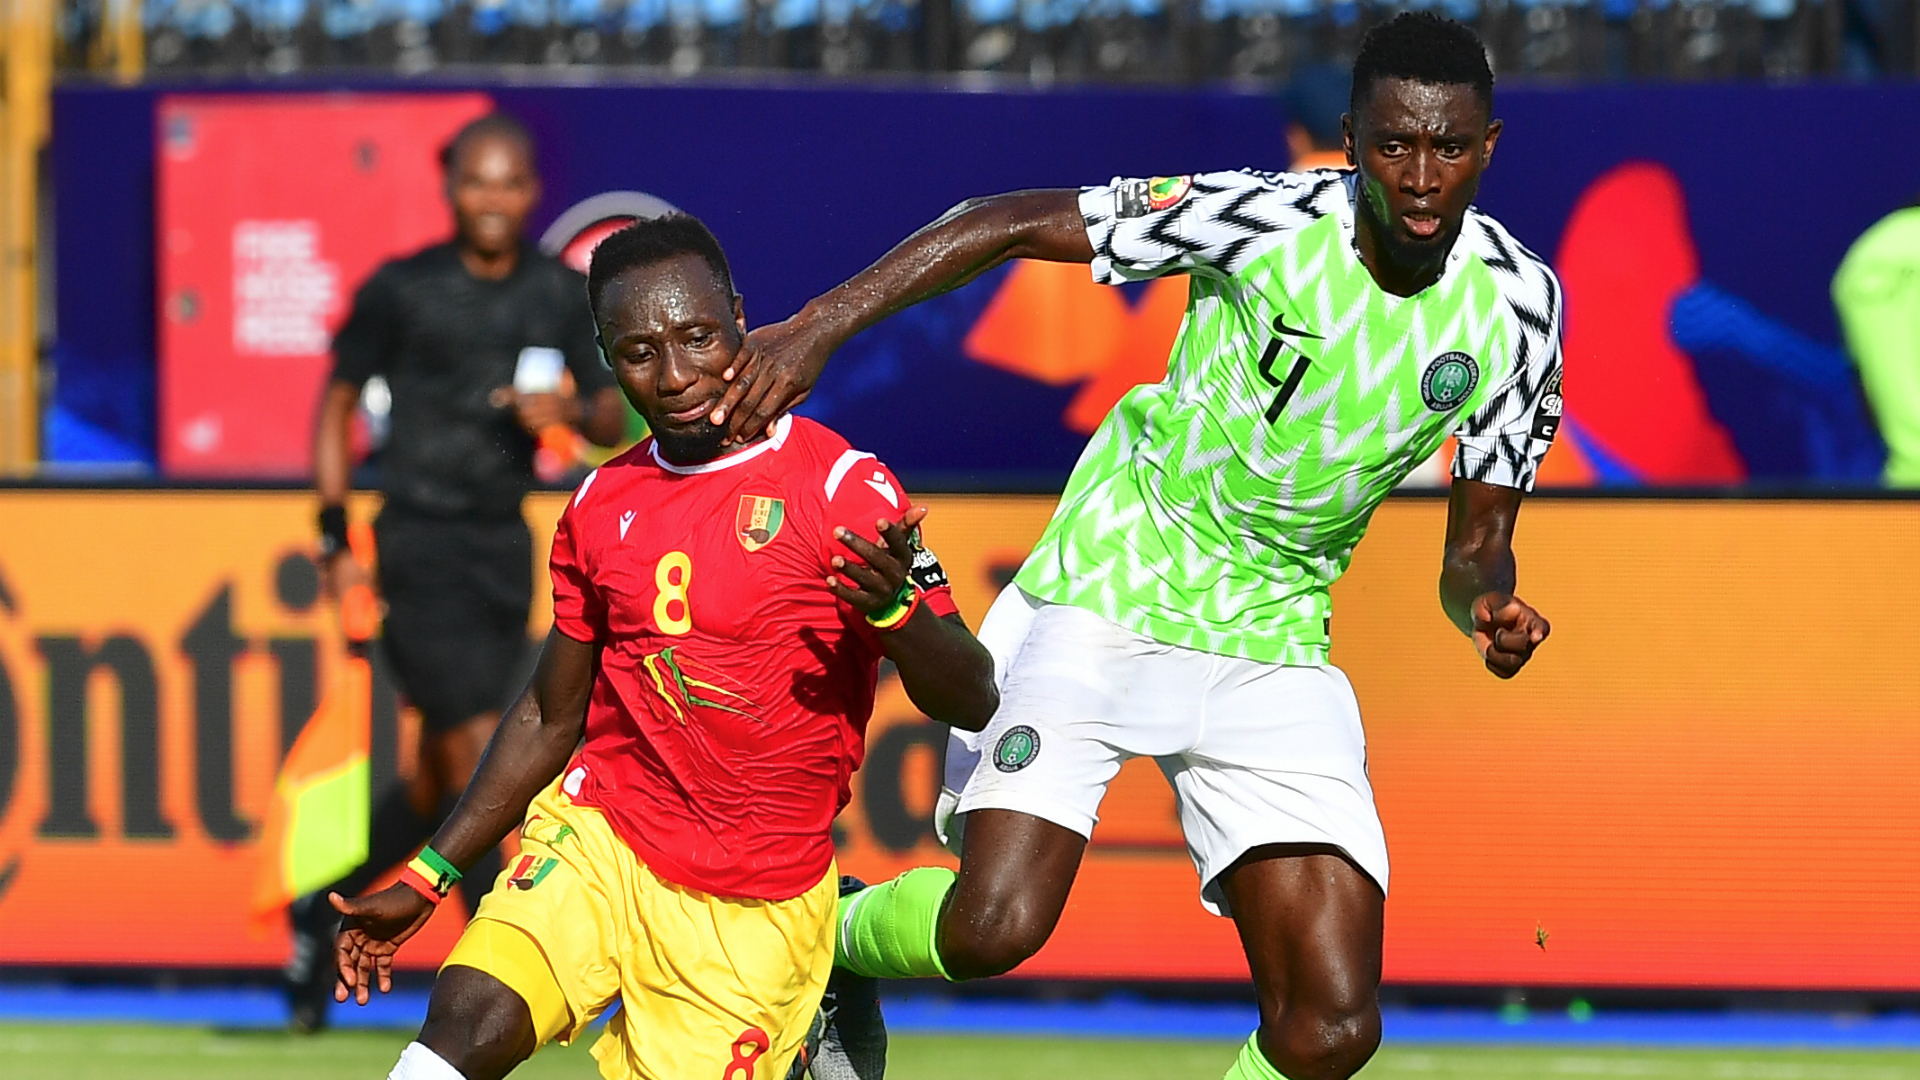 Nigeria vs Cameroon: Where the game will be won and lost